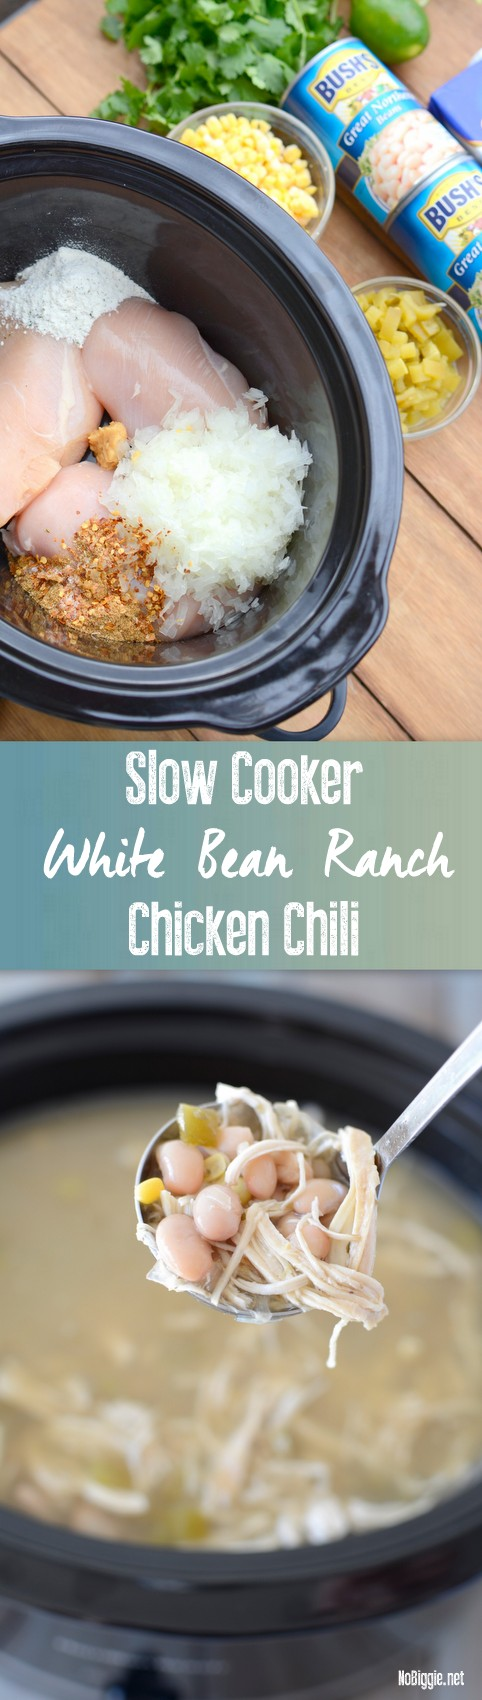 Slow Cooker White Bean Ranch Chicken Chili recipe | - so good and so easy NoBiggie.net